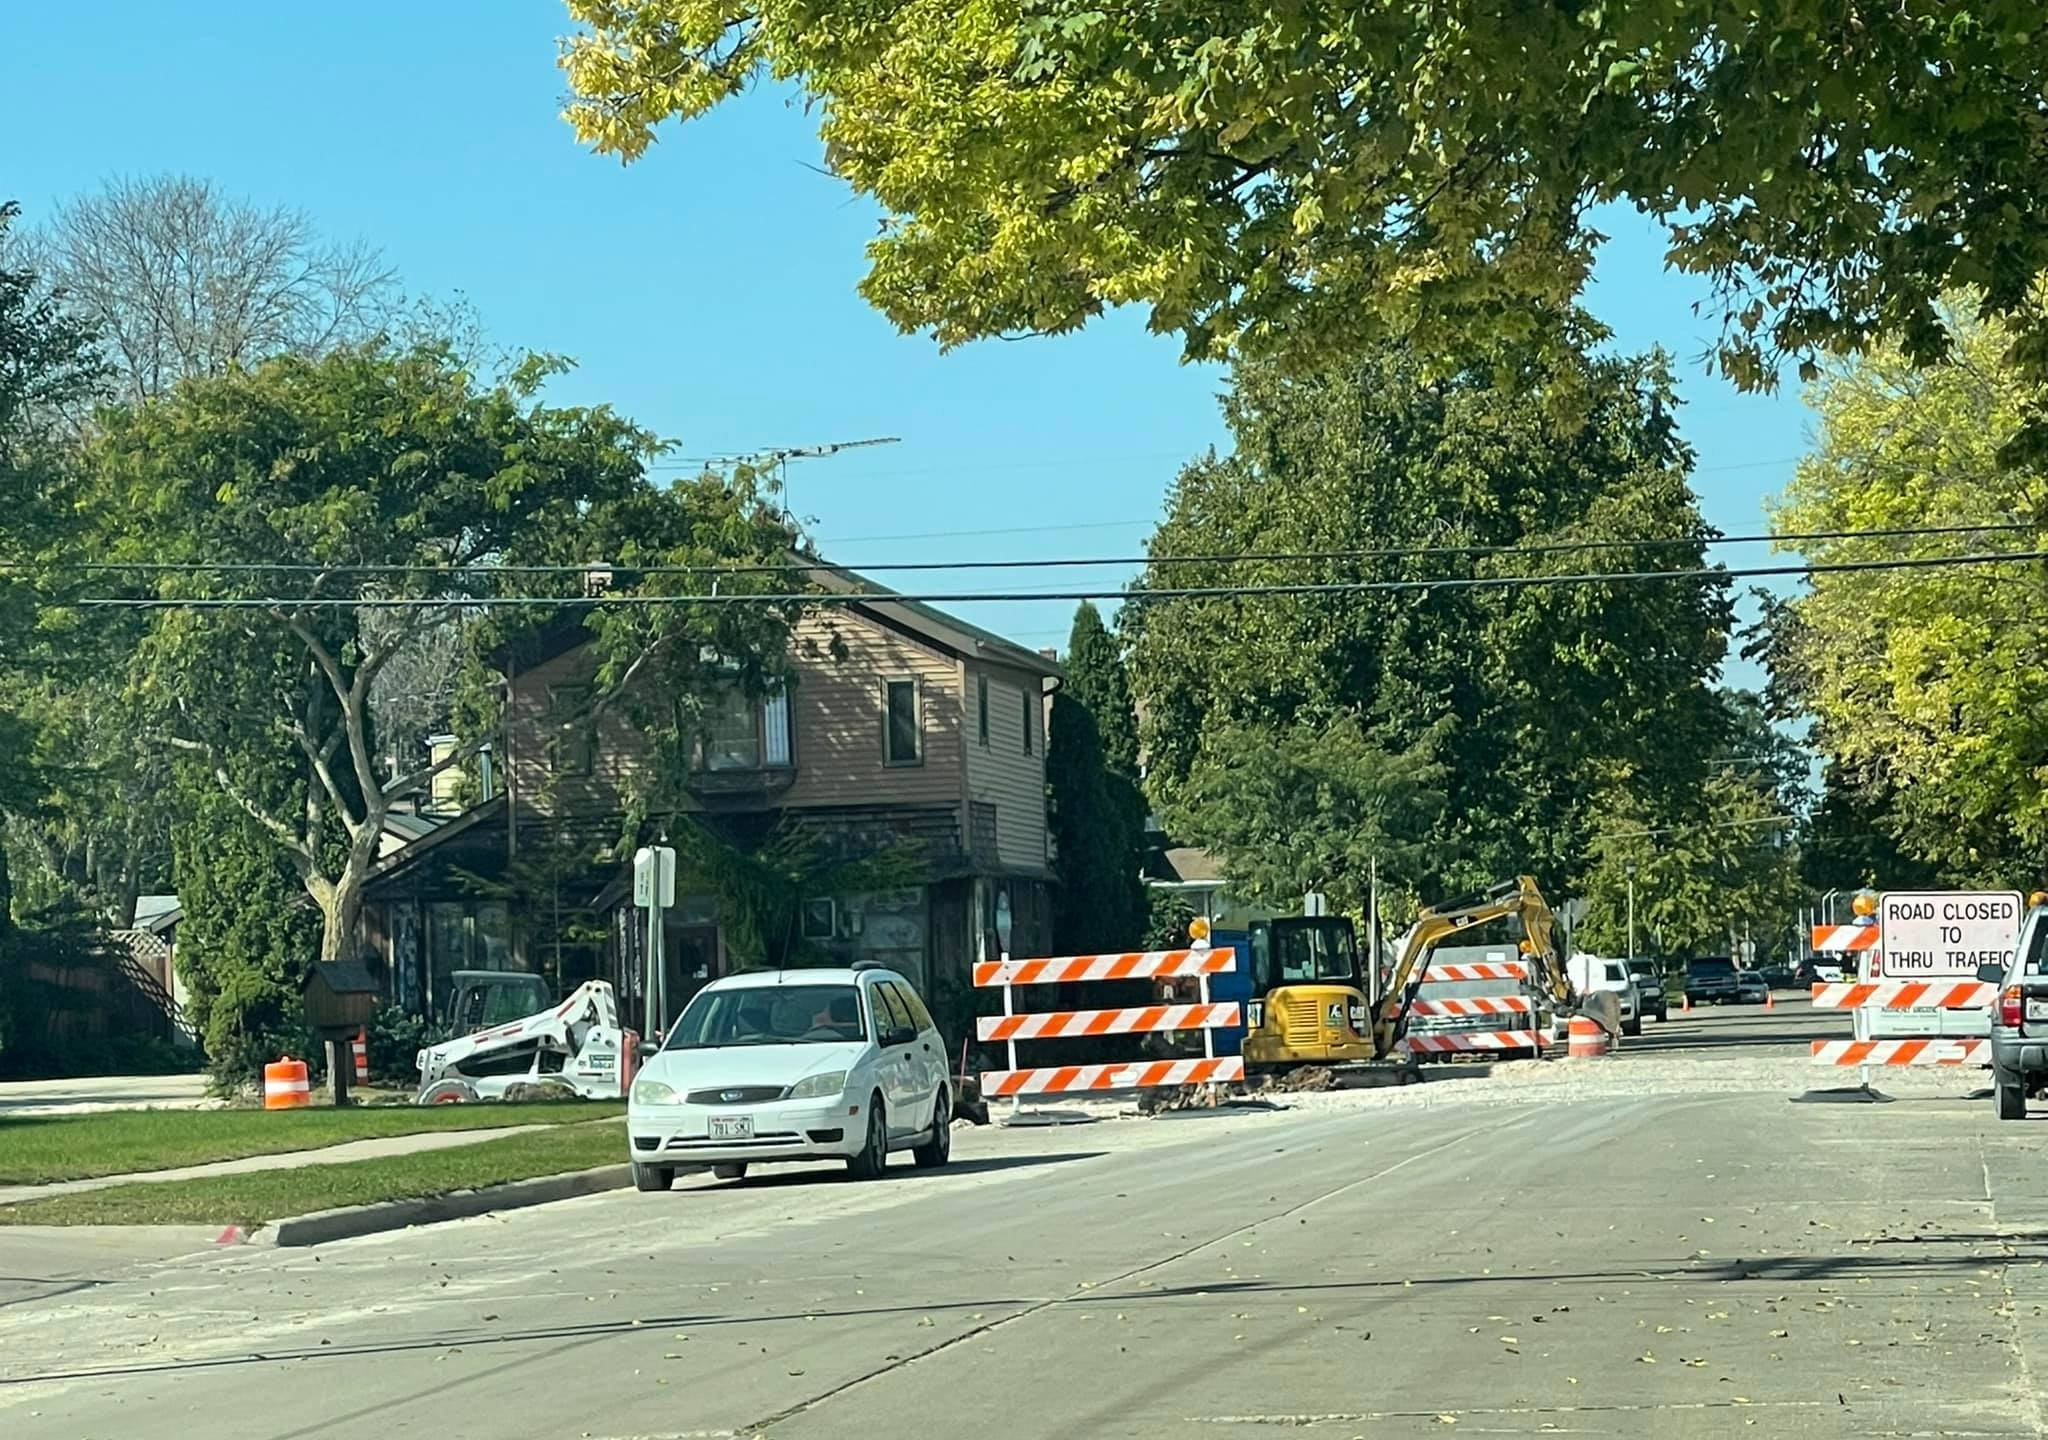 HAPPENING NOW: Gas leak in Fond du Lac, residents evacuated, repairs are ongoing